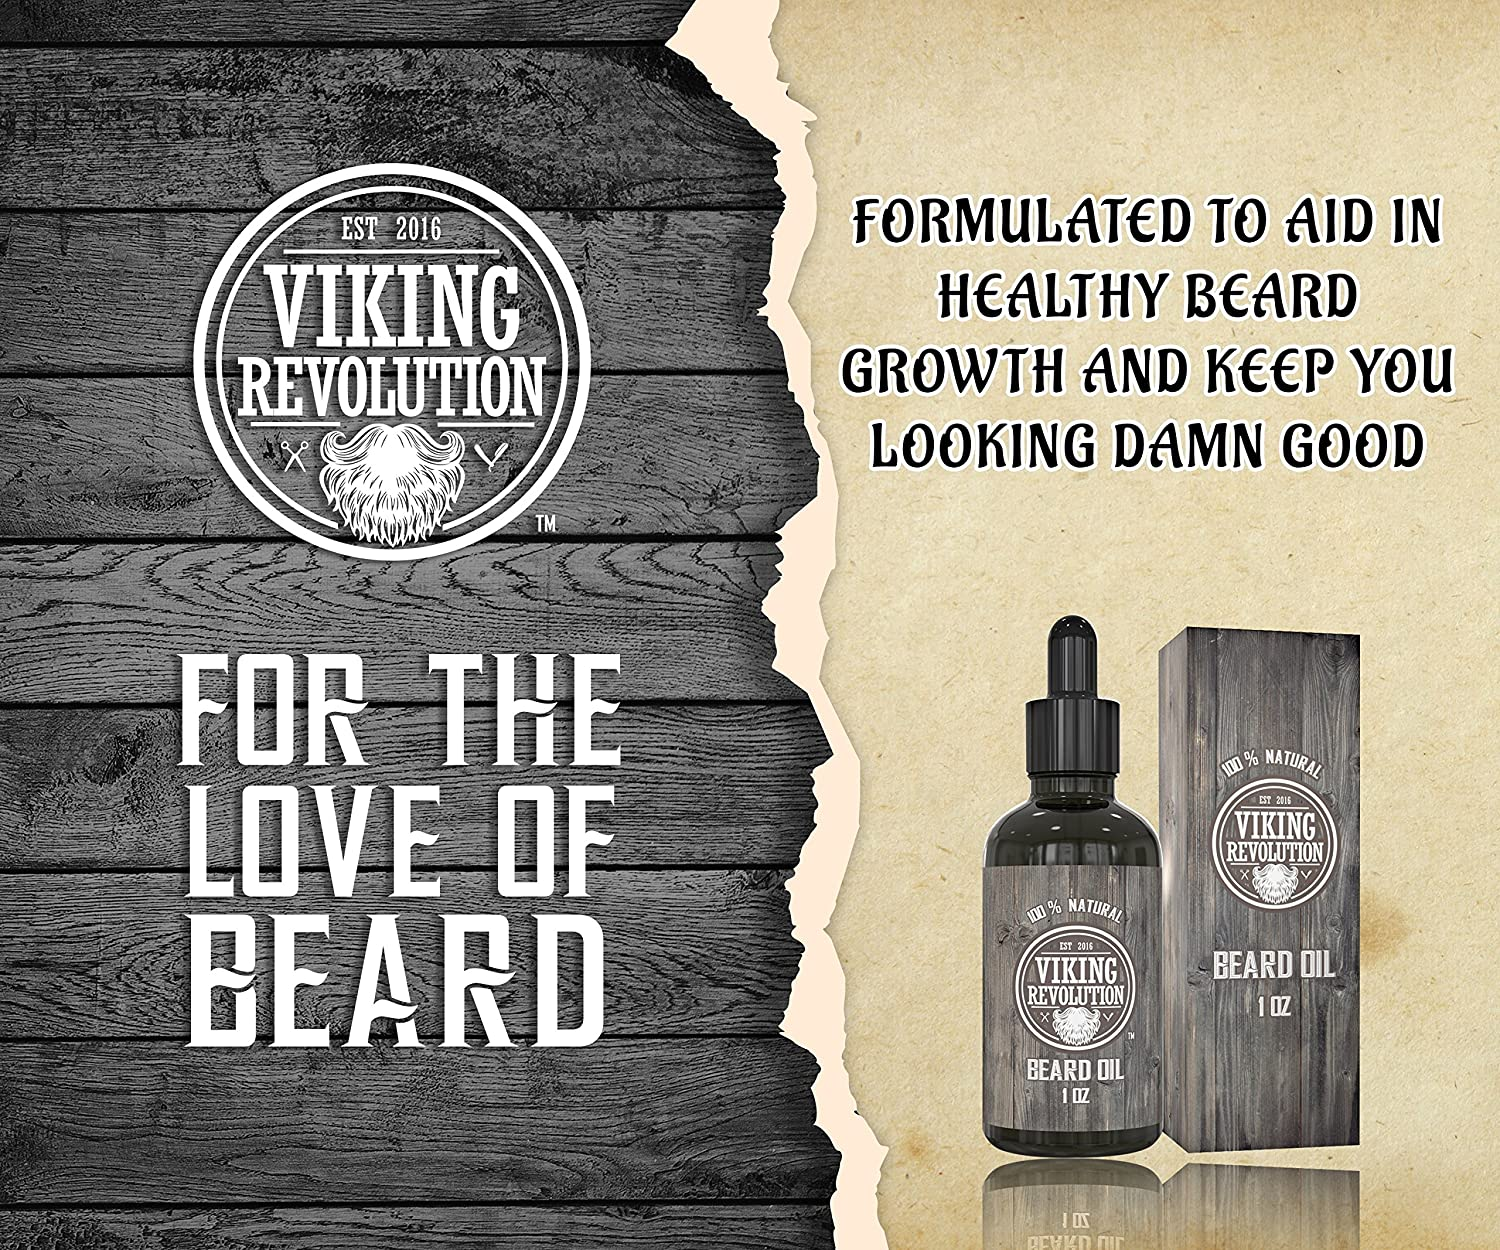 13 Best Beard Growth Oil for fast results viking img